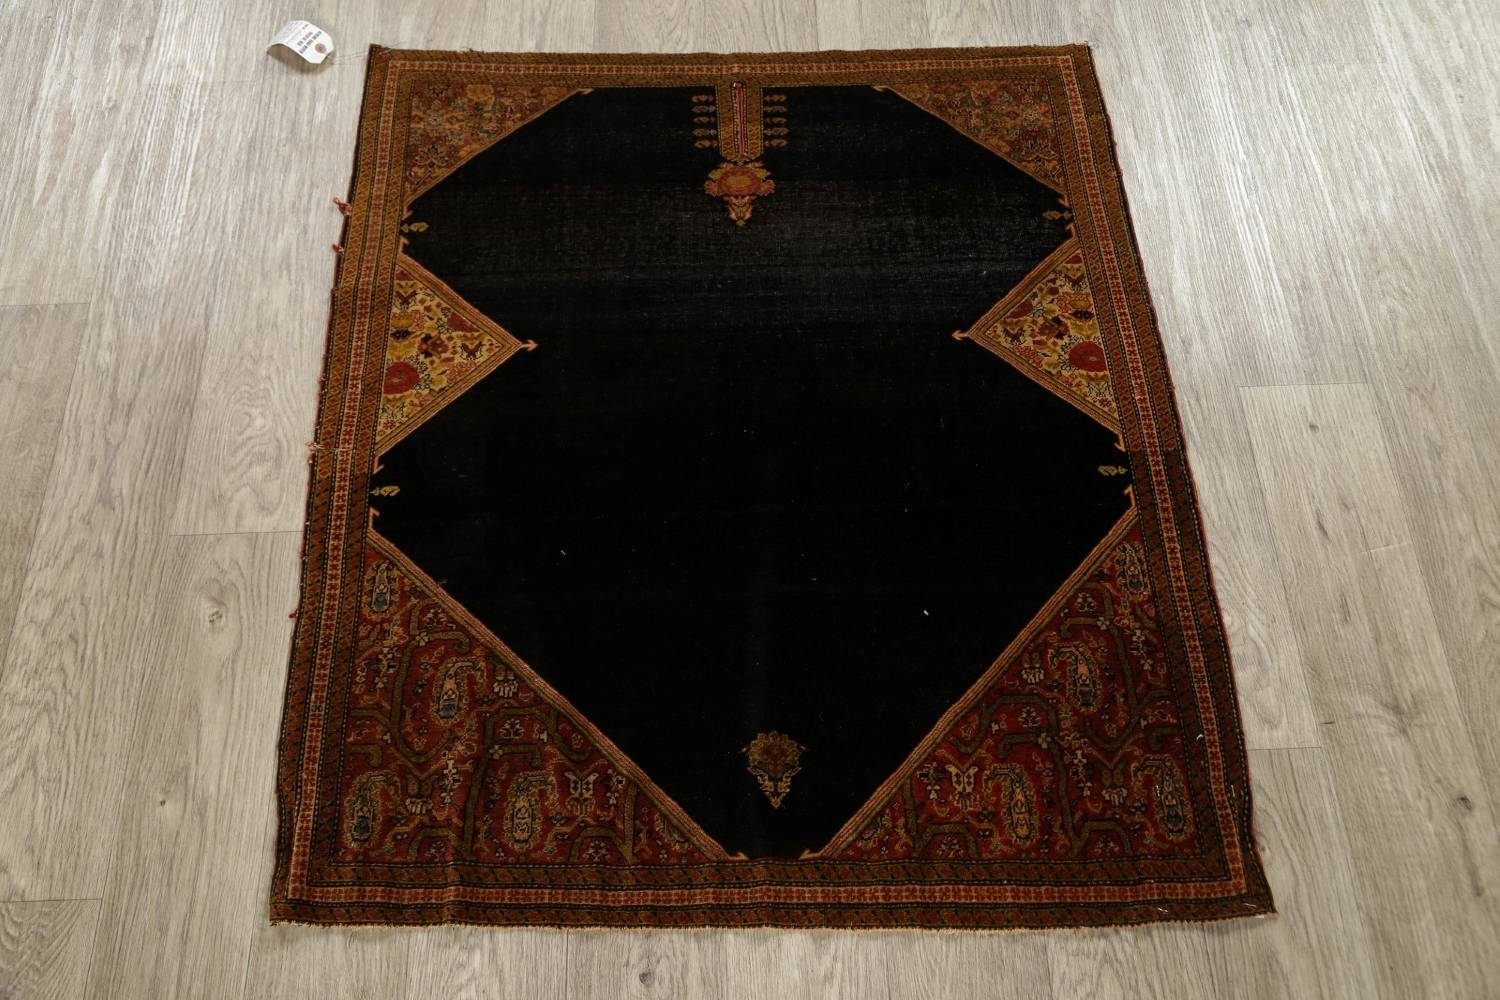 Pre-1900 Vegetable Dye Sarouk Farahan Persian Hand-Knotted 3x3 Square Rug image 15